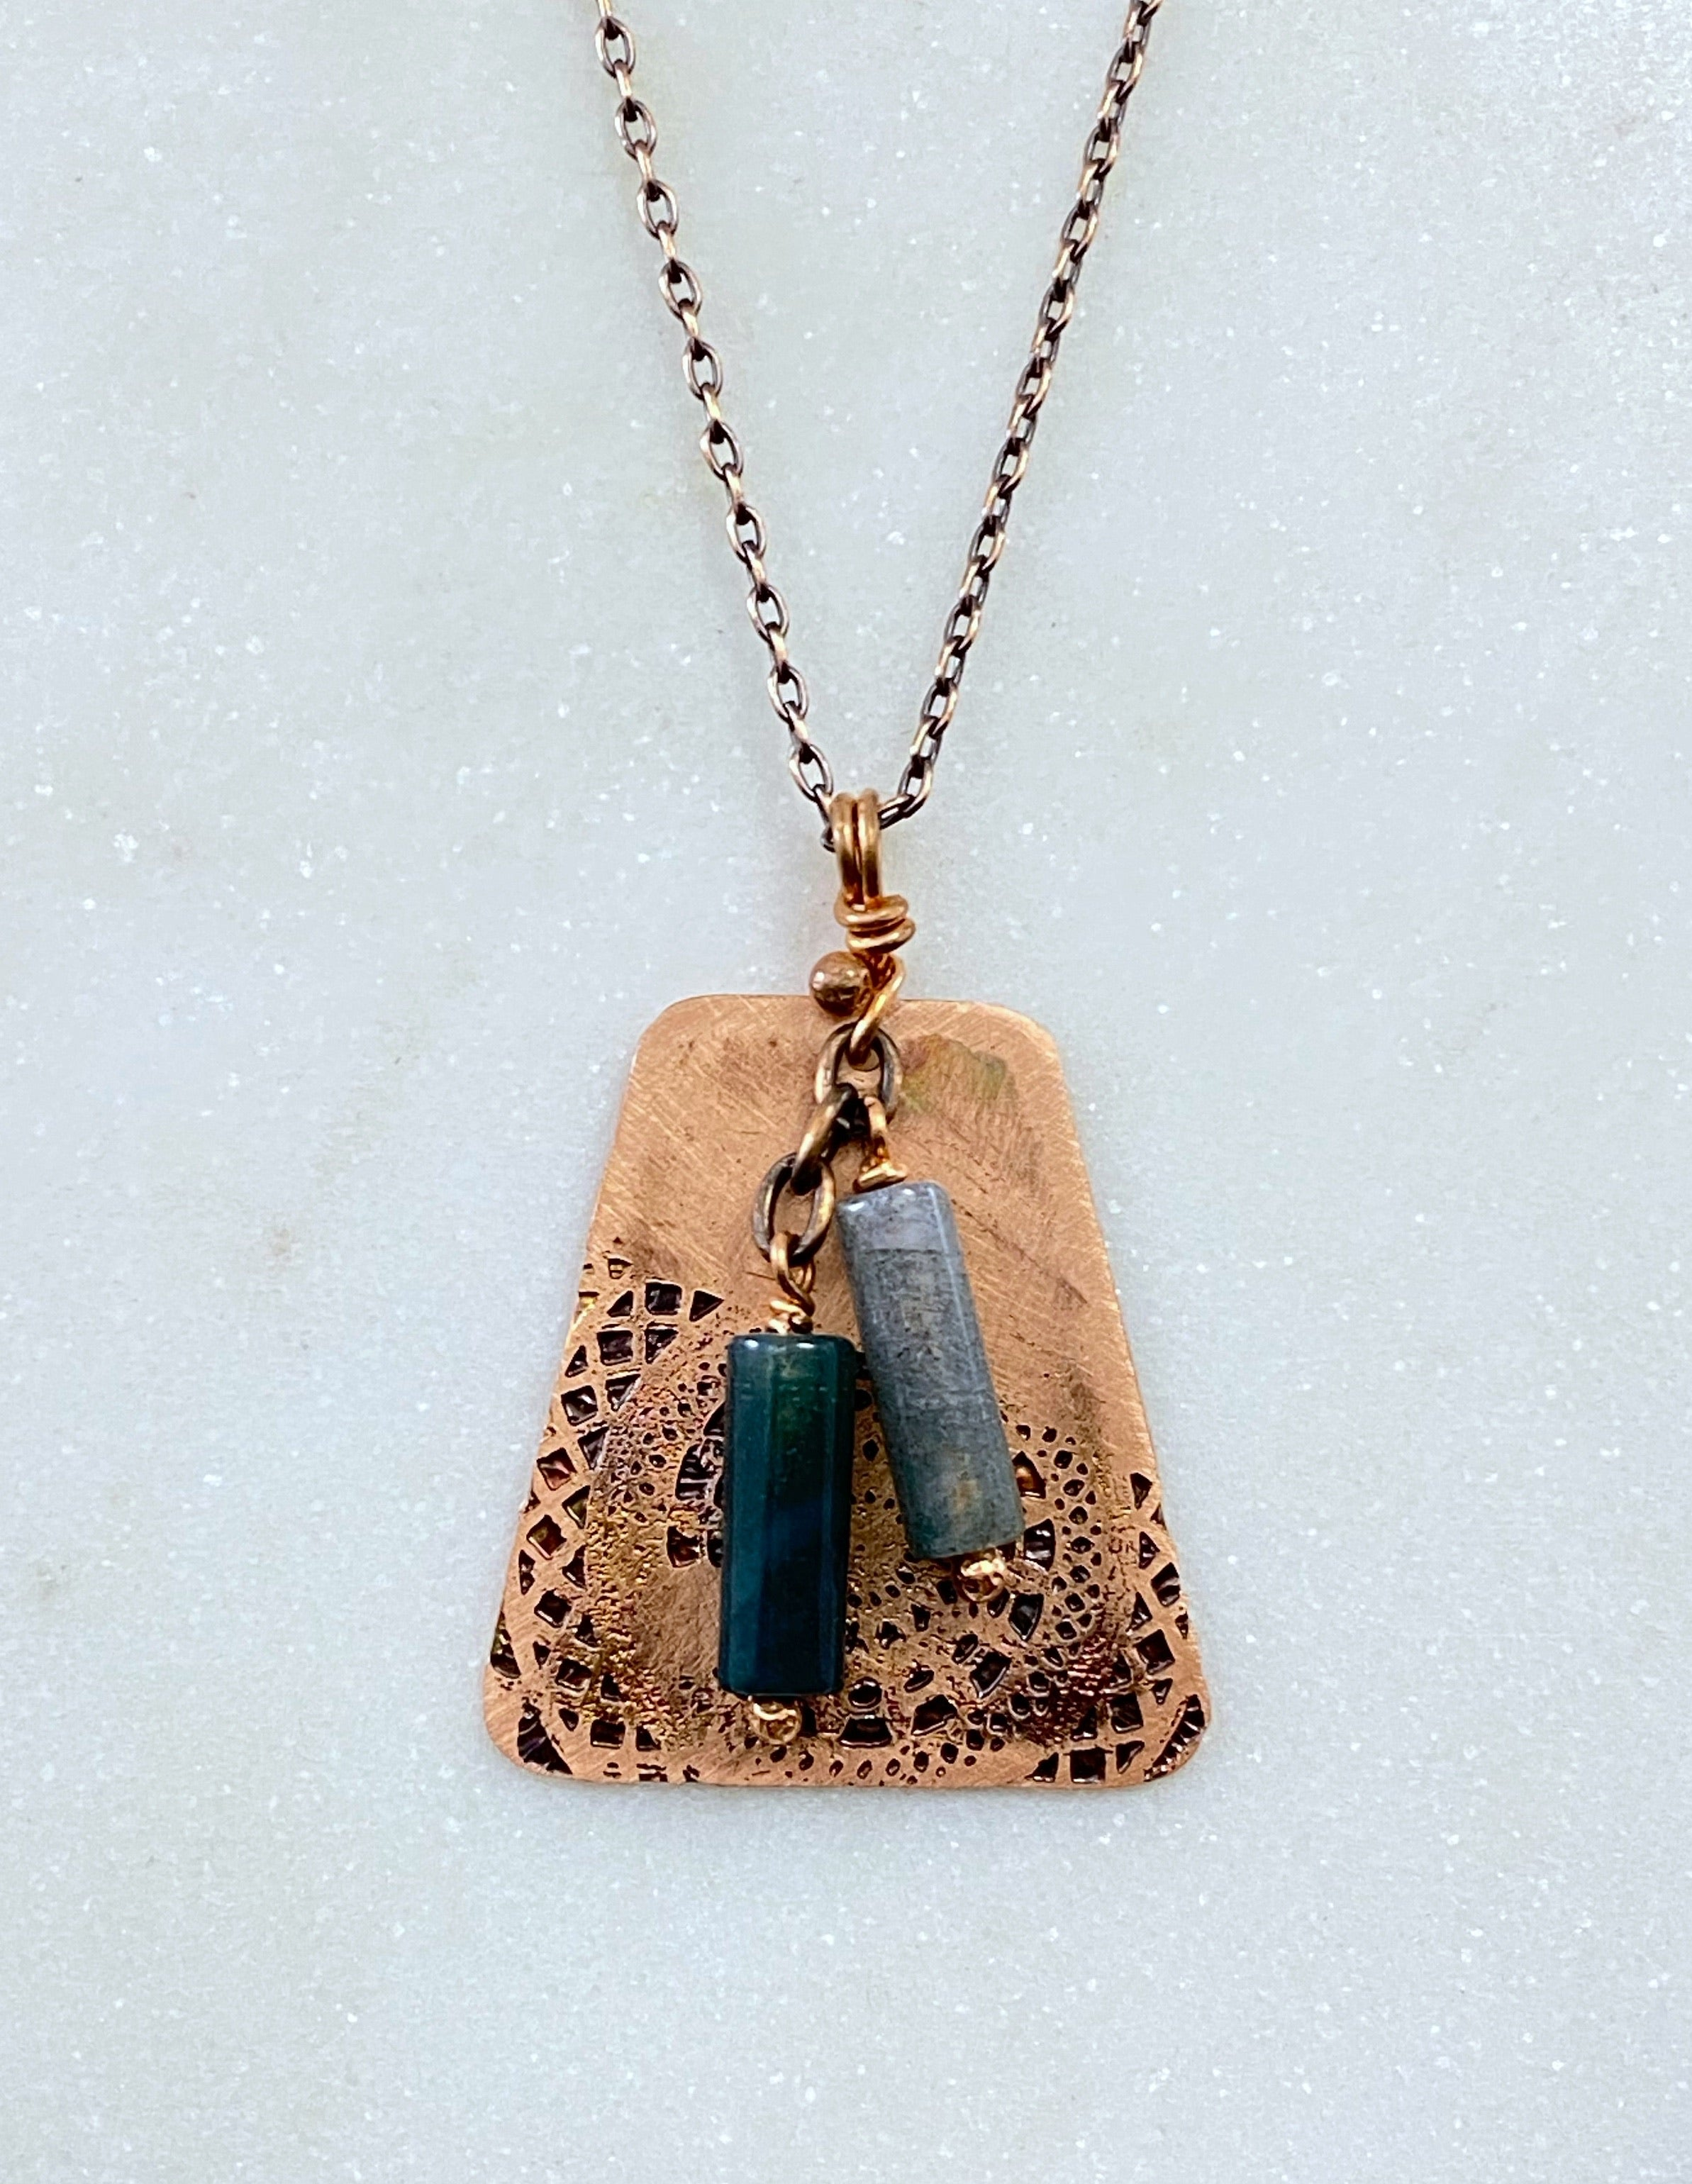 Acid etched copper mandala necklace with moss agate